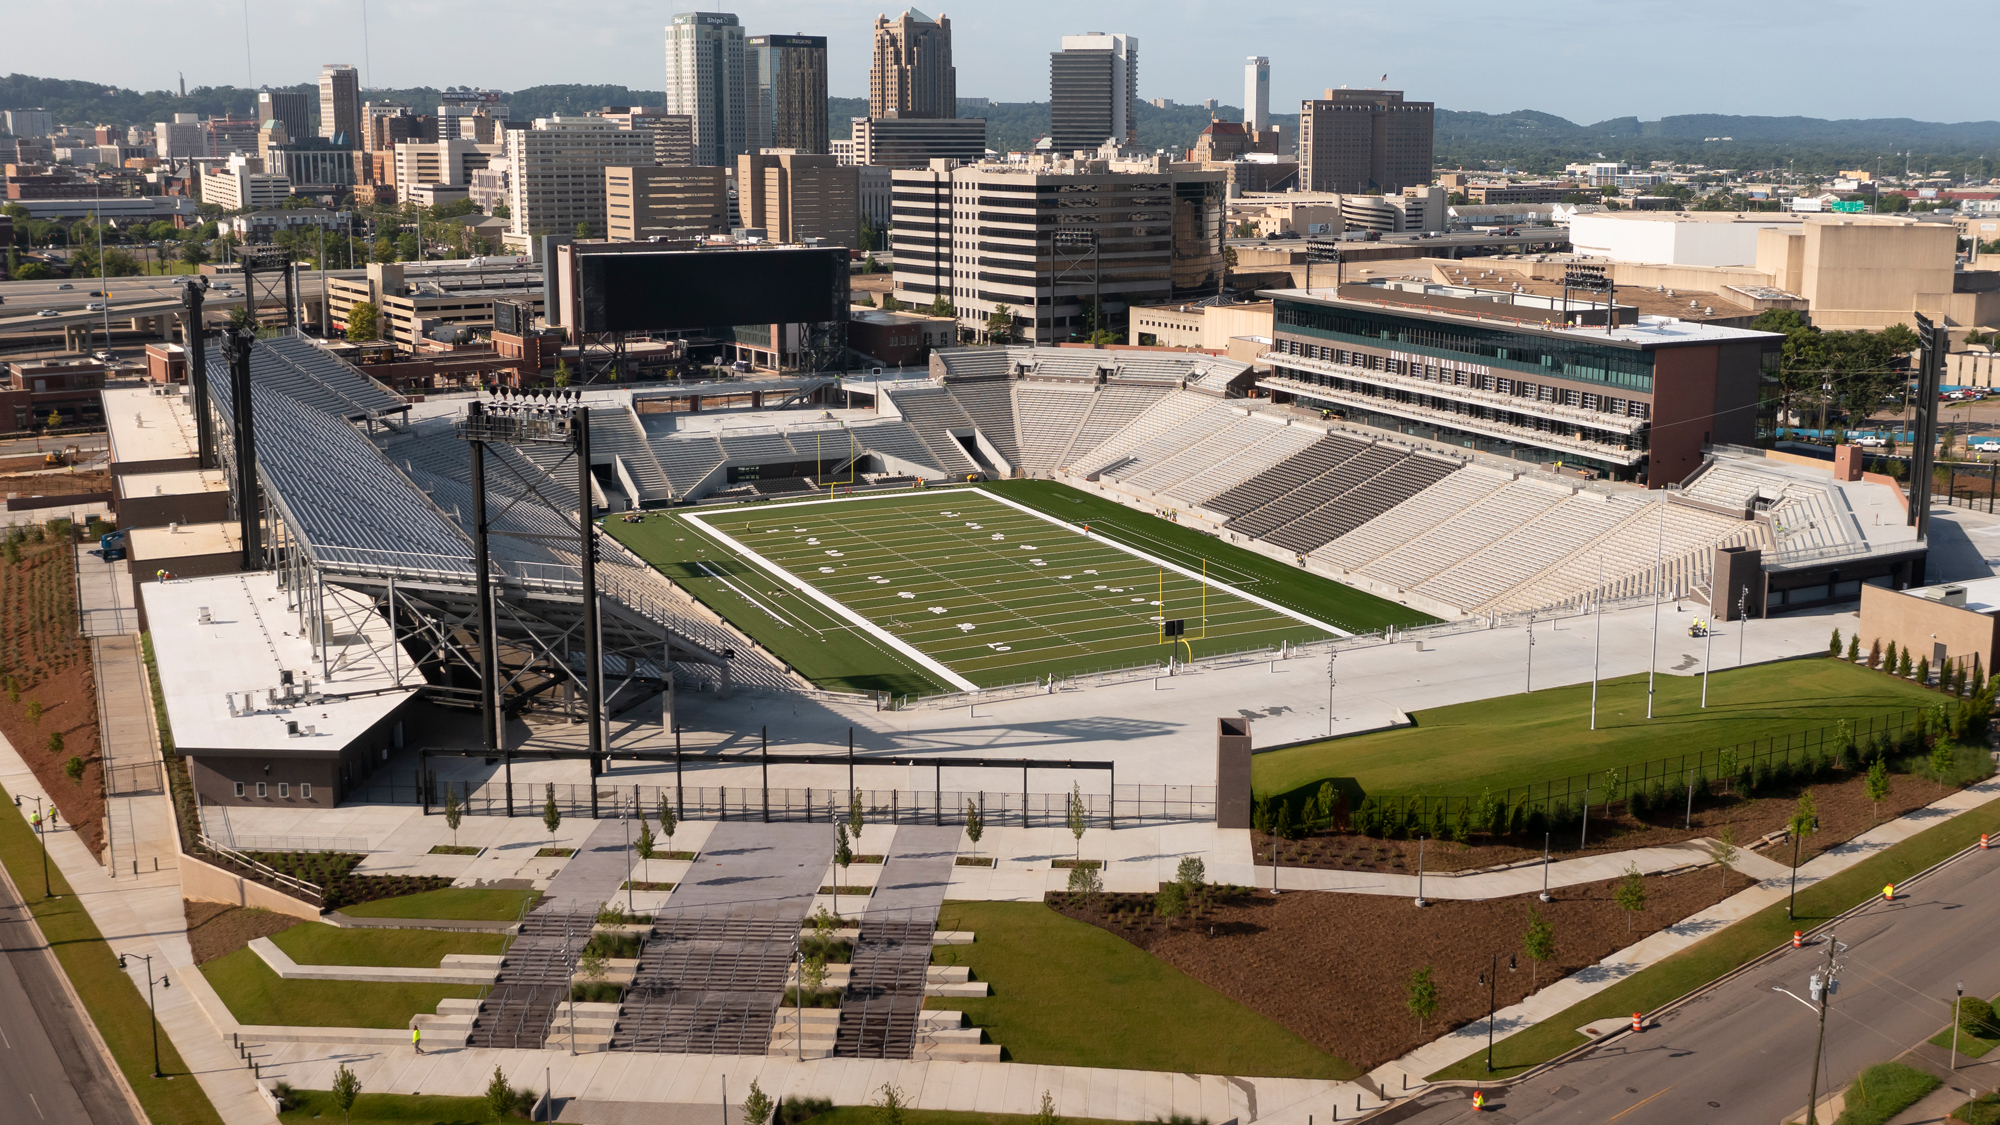 'Just eternally grateful': UAB fans celebrate first home game in new stadium